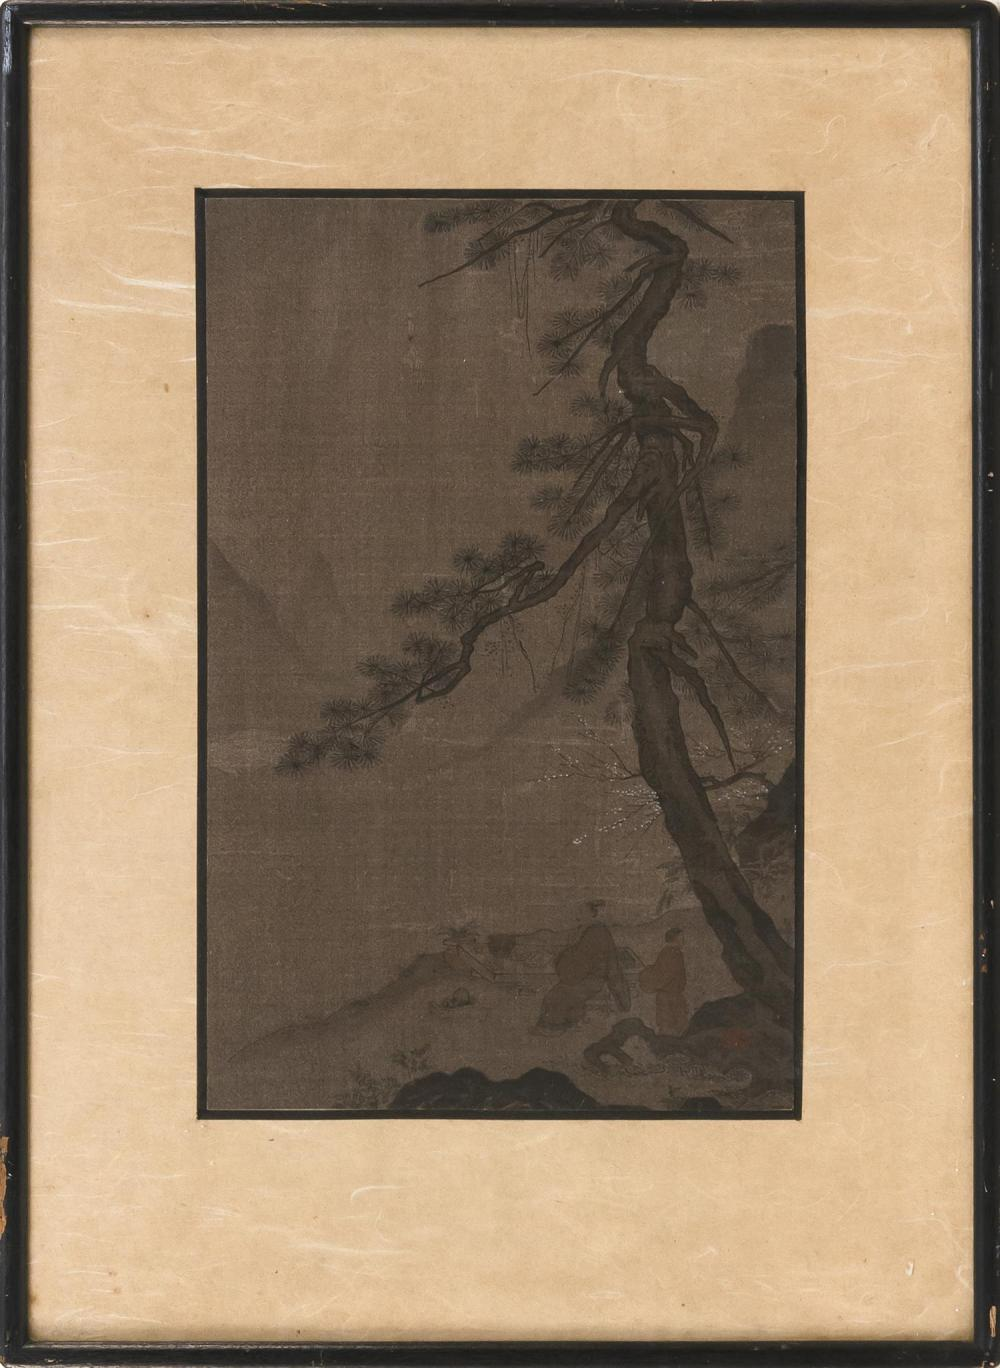 "KOREAN PRINT ON PAPER After an earlier example, depicting sages beneath a pine tree. 12"" x 8"". Framed 18"" x 13""."